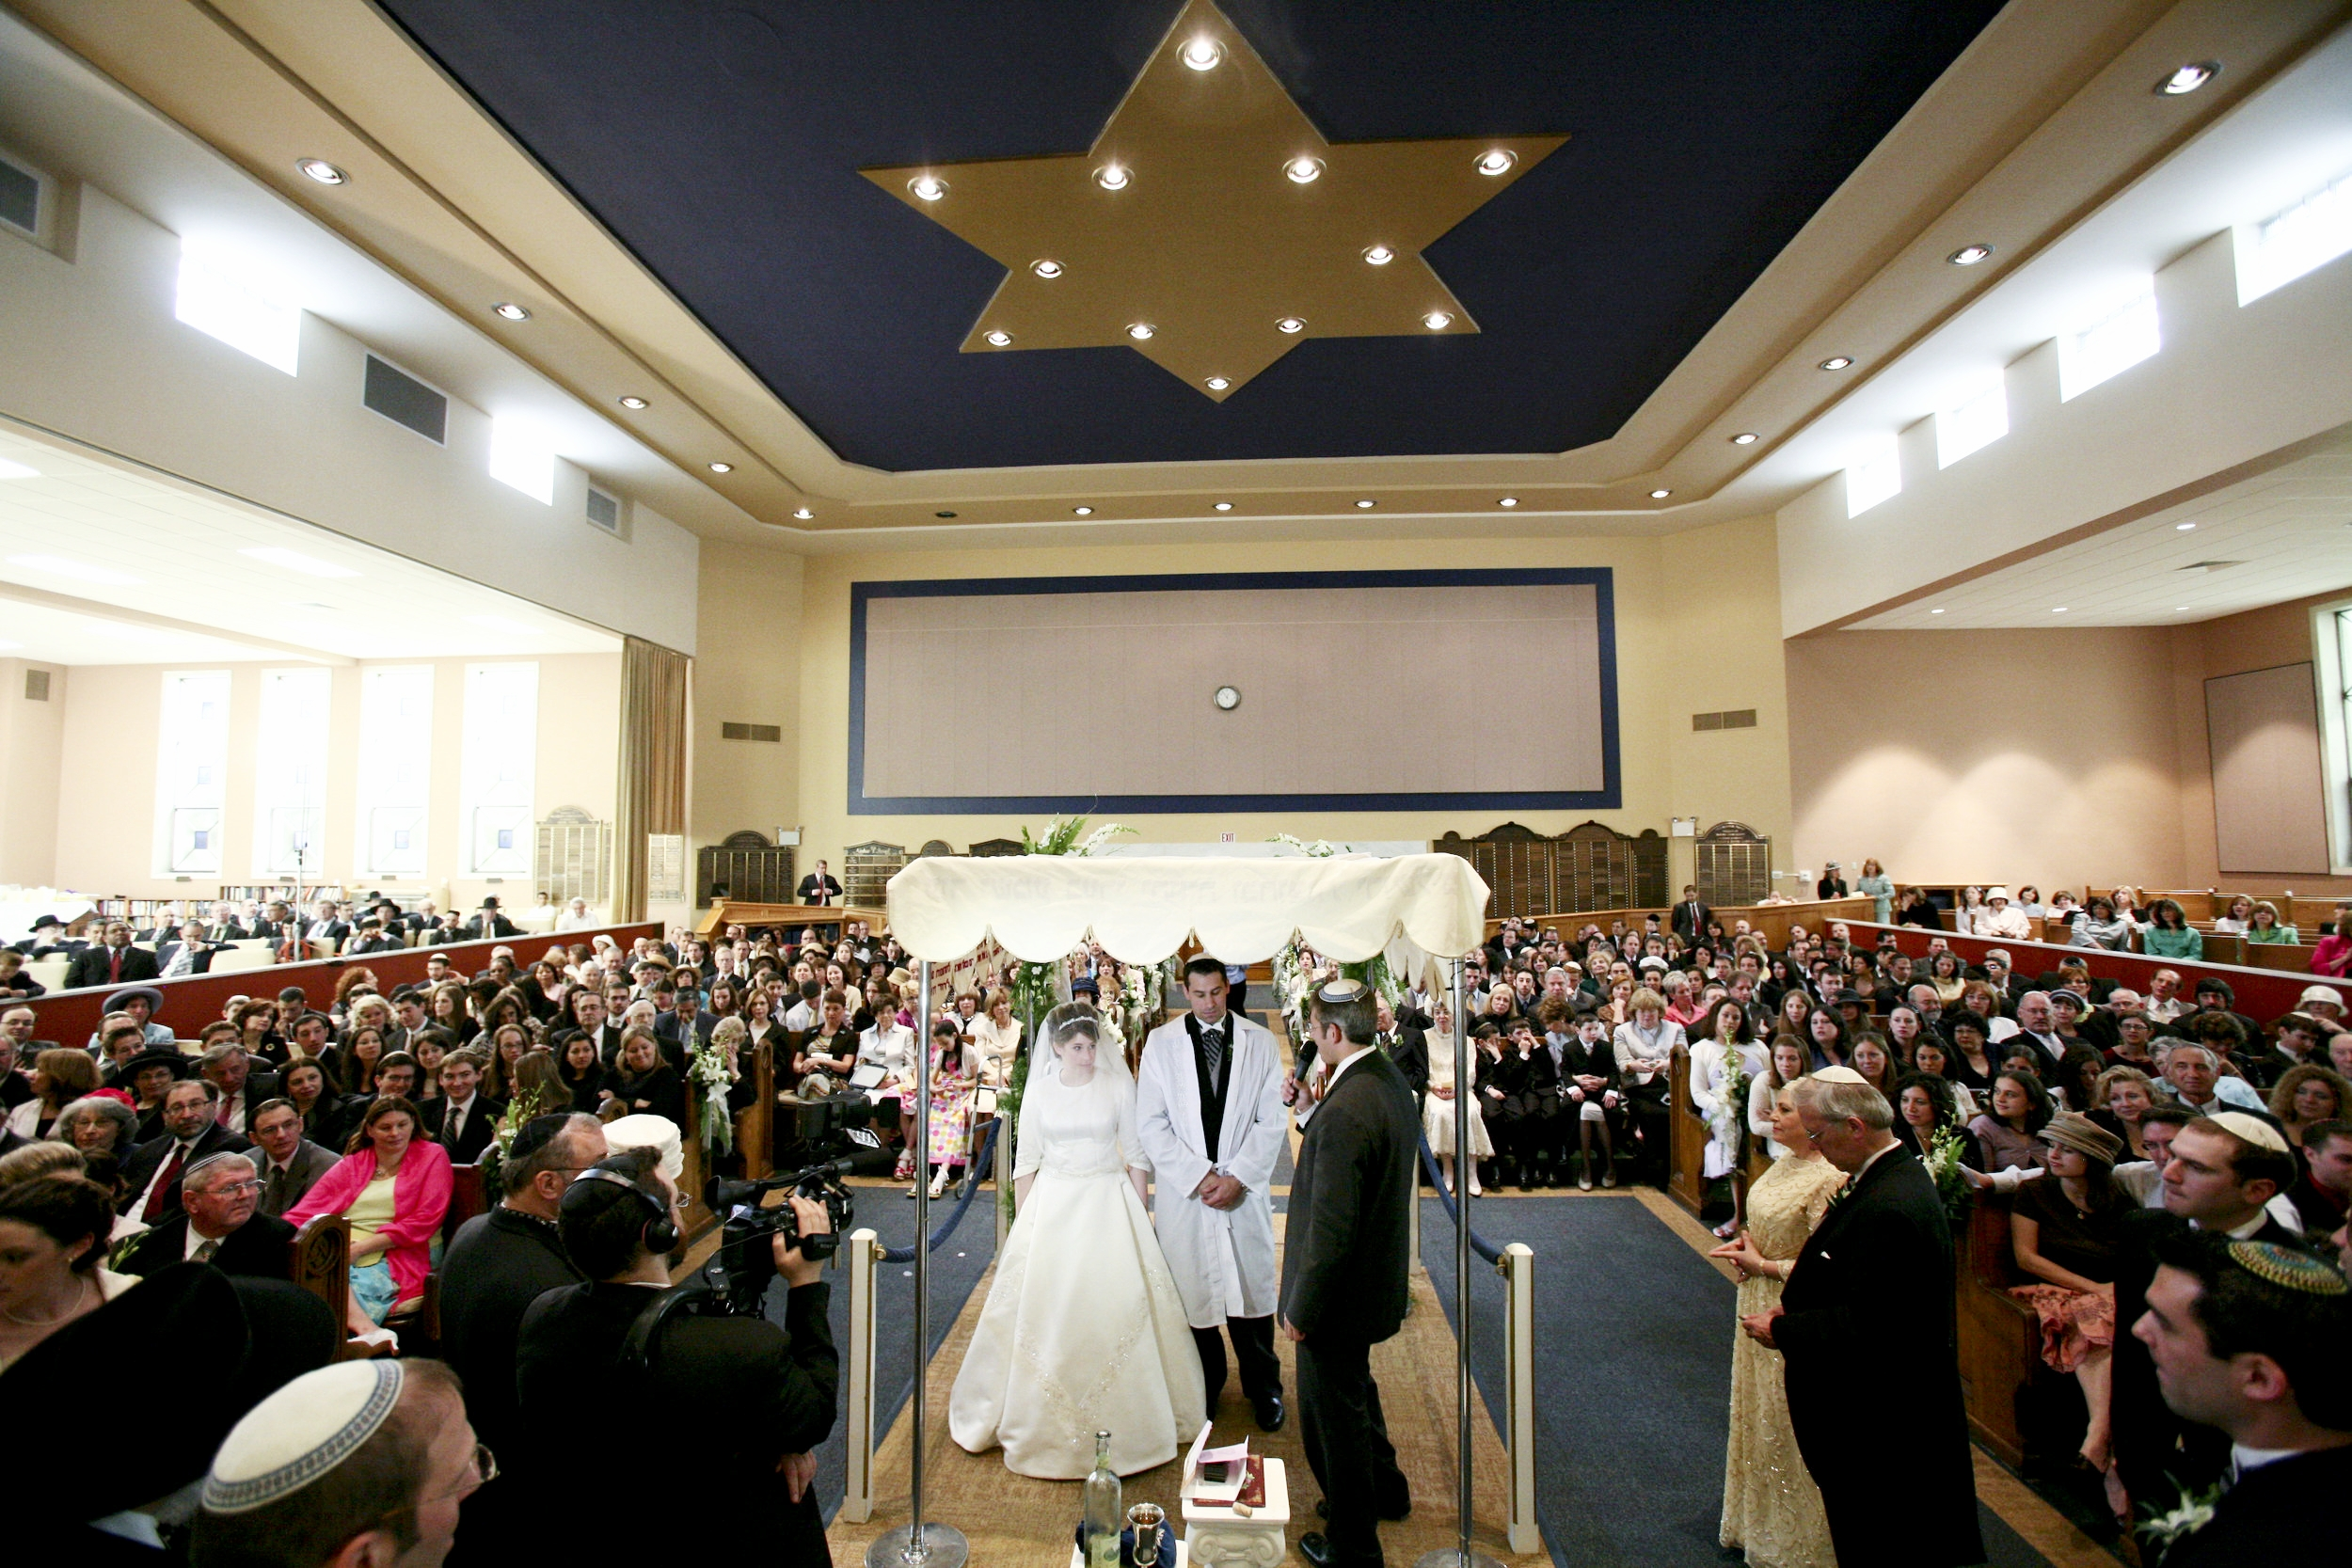 Wide shot of synagogue during Jewish wedding ceremony